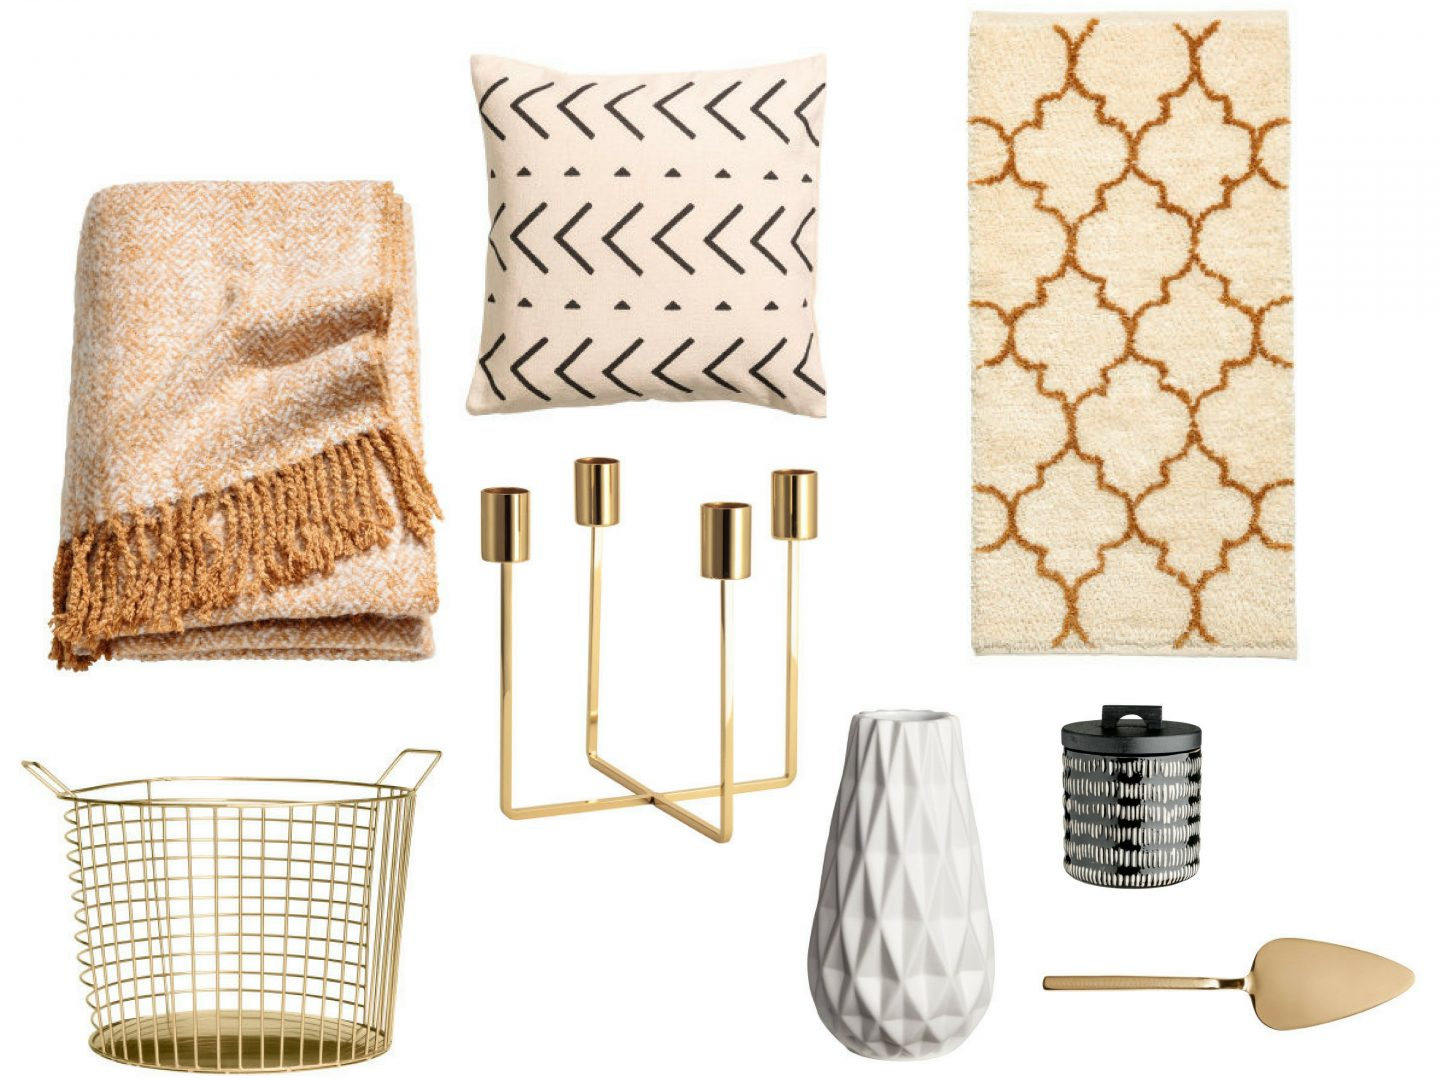 H&M homeware edit – my latest finds (autumnal inspired)